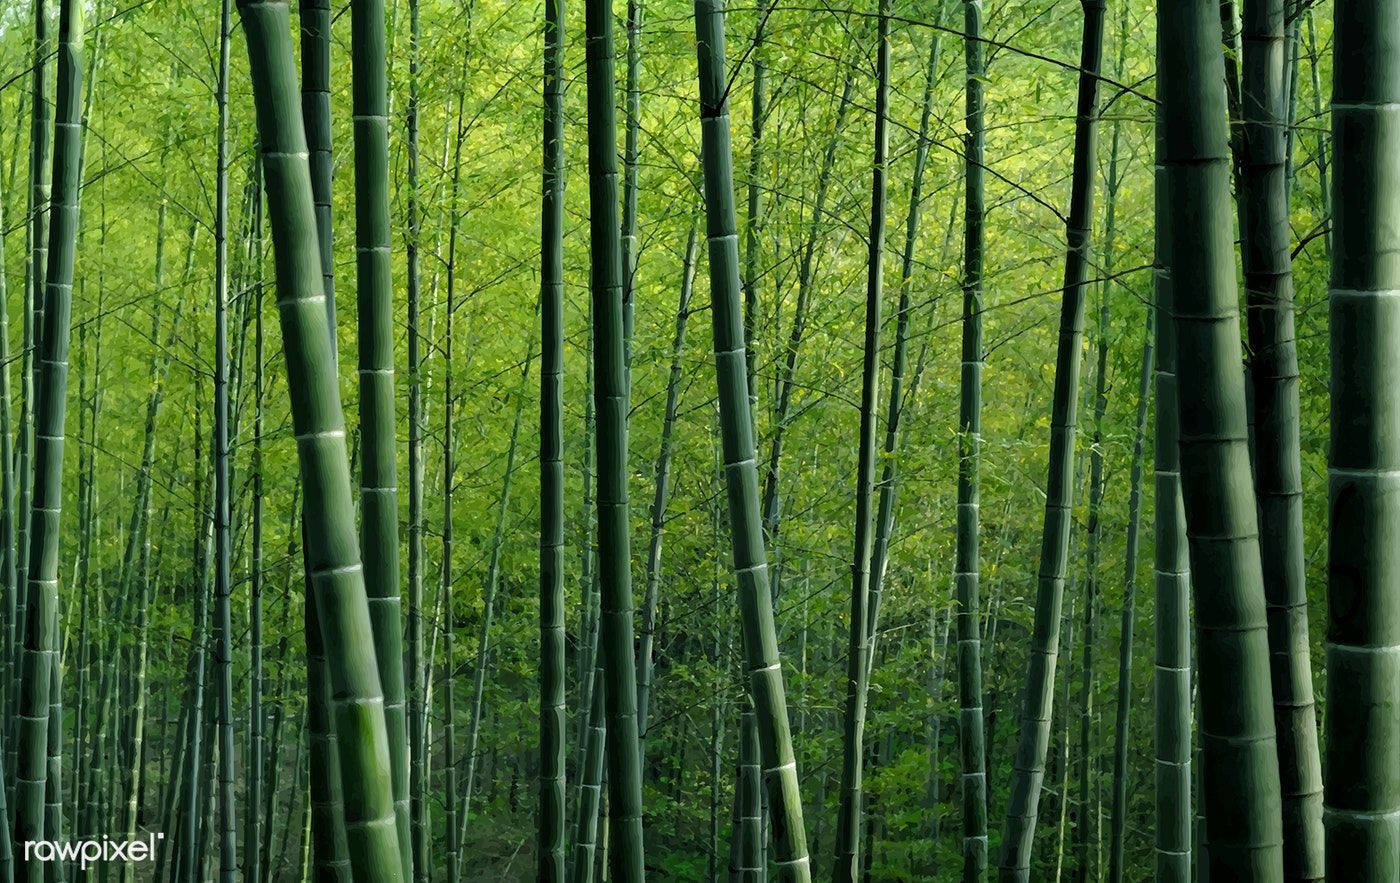 Green Bamboo Forest Textured Wallpaper Free Image By Rawpixel Com